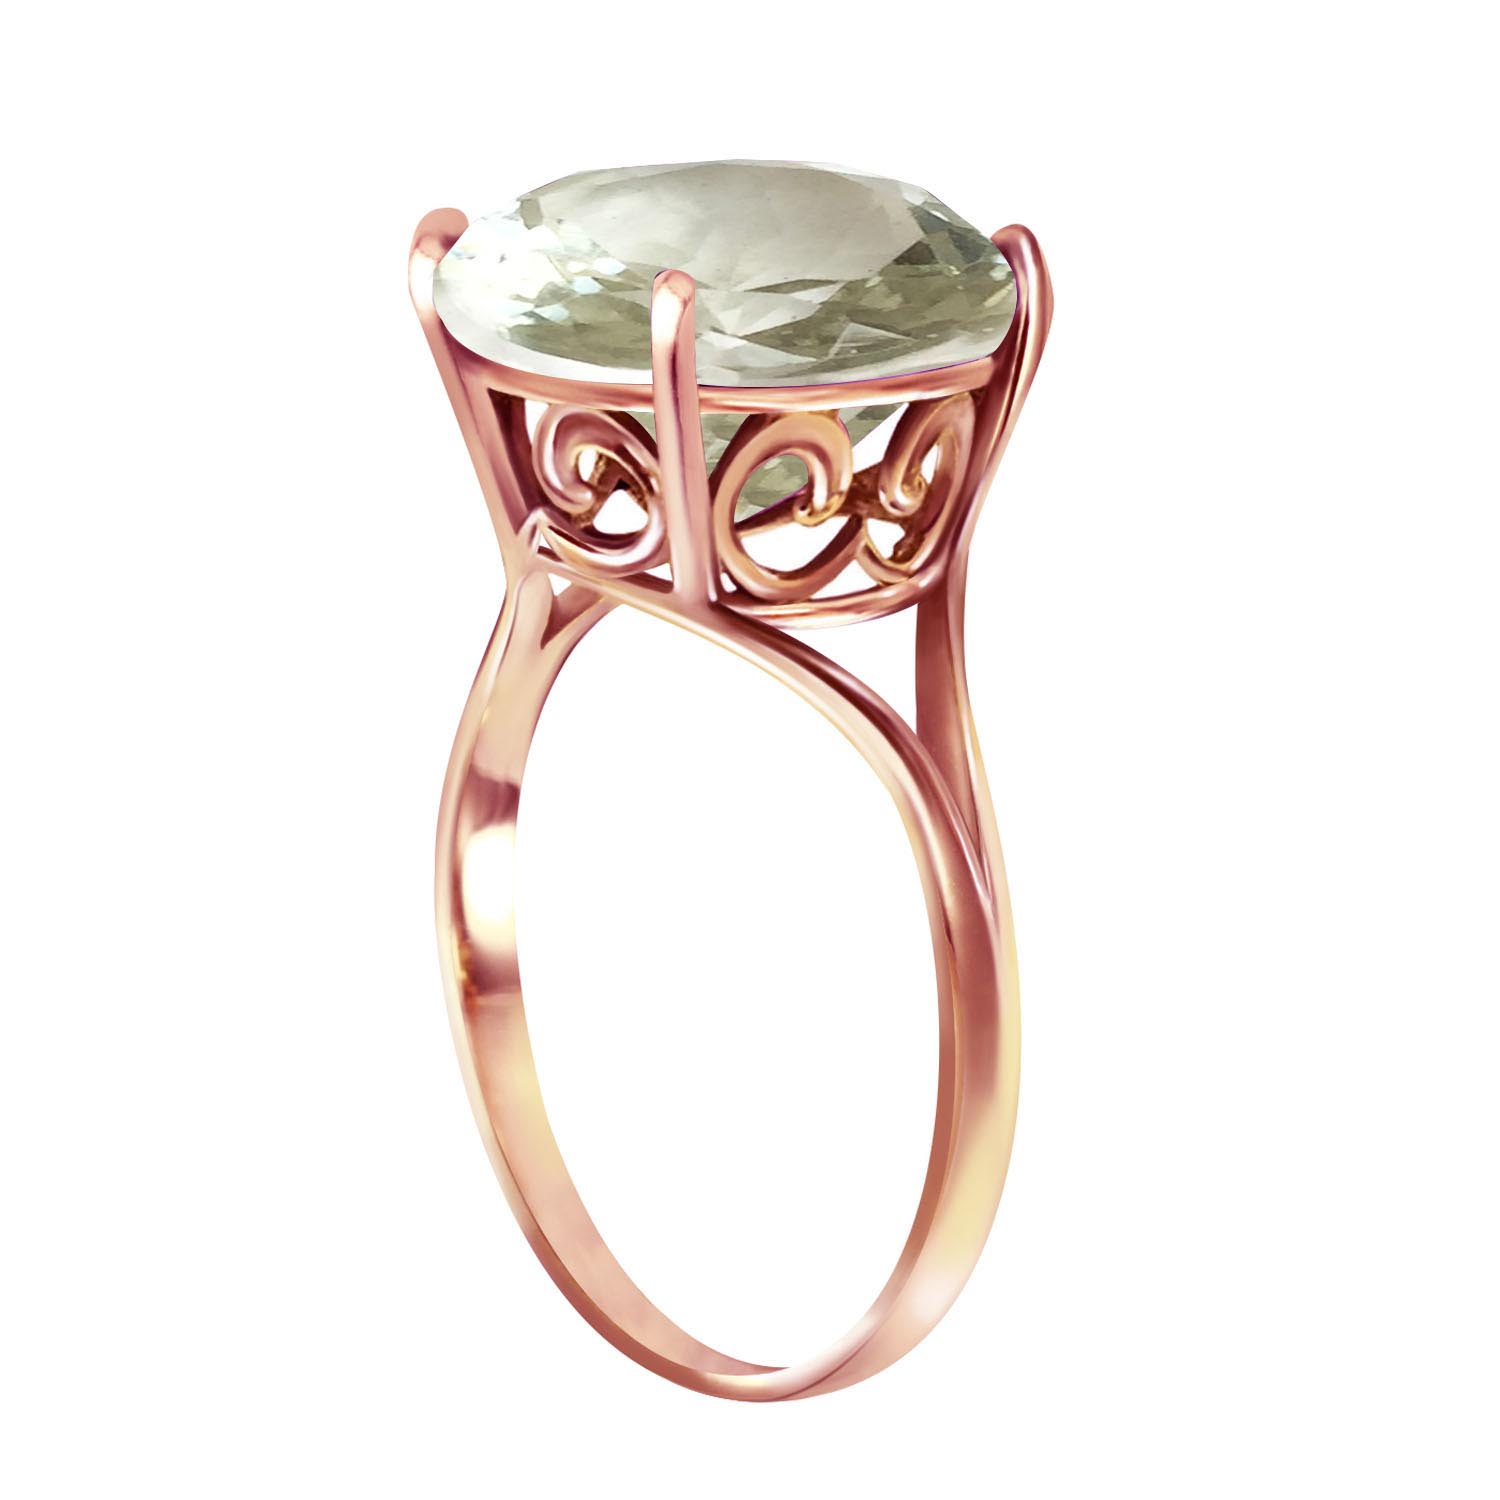 Round Brilliant Cut Green Amethyst Ring 5.5ct in 14K Rose Gold